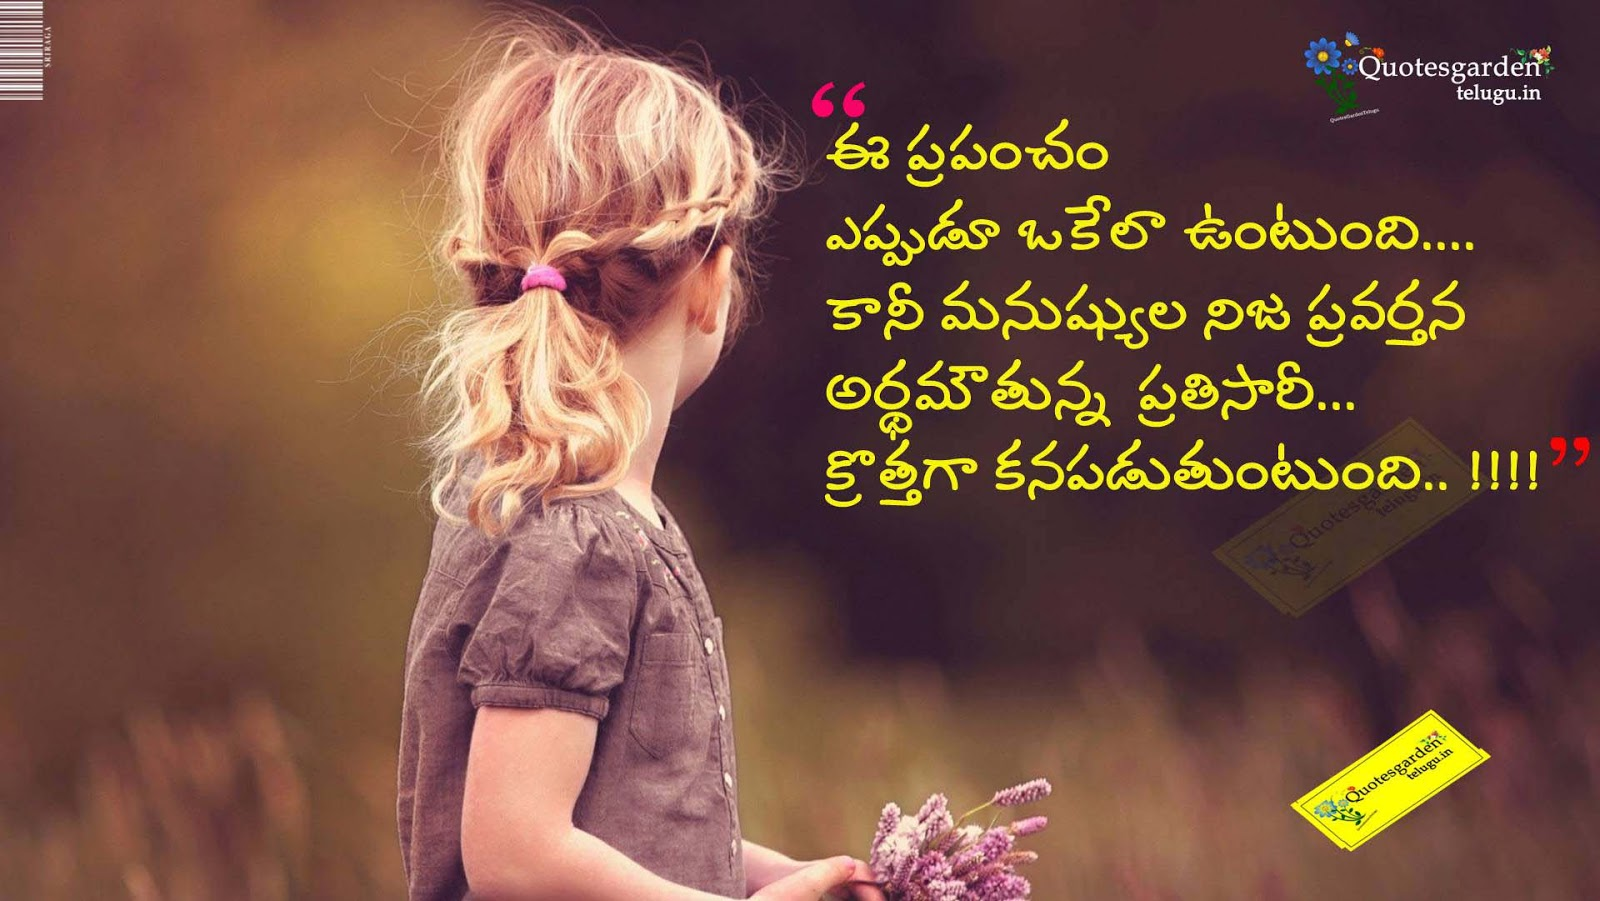 Sad Love broken heart telugu quotes with hd wallpapers 707 QUOTES ...